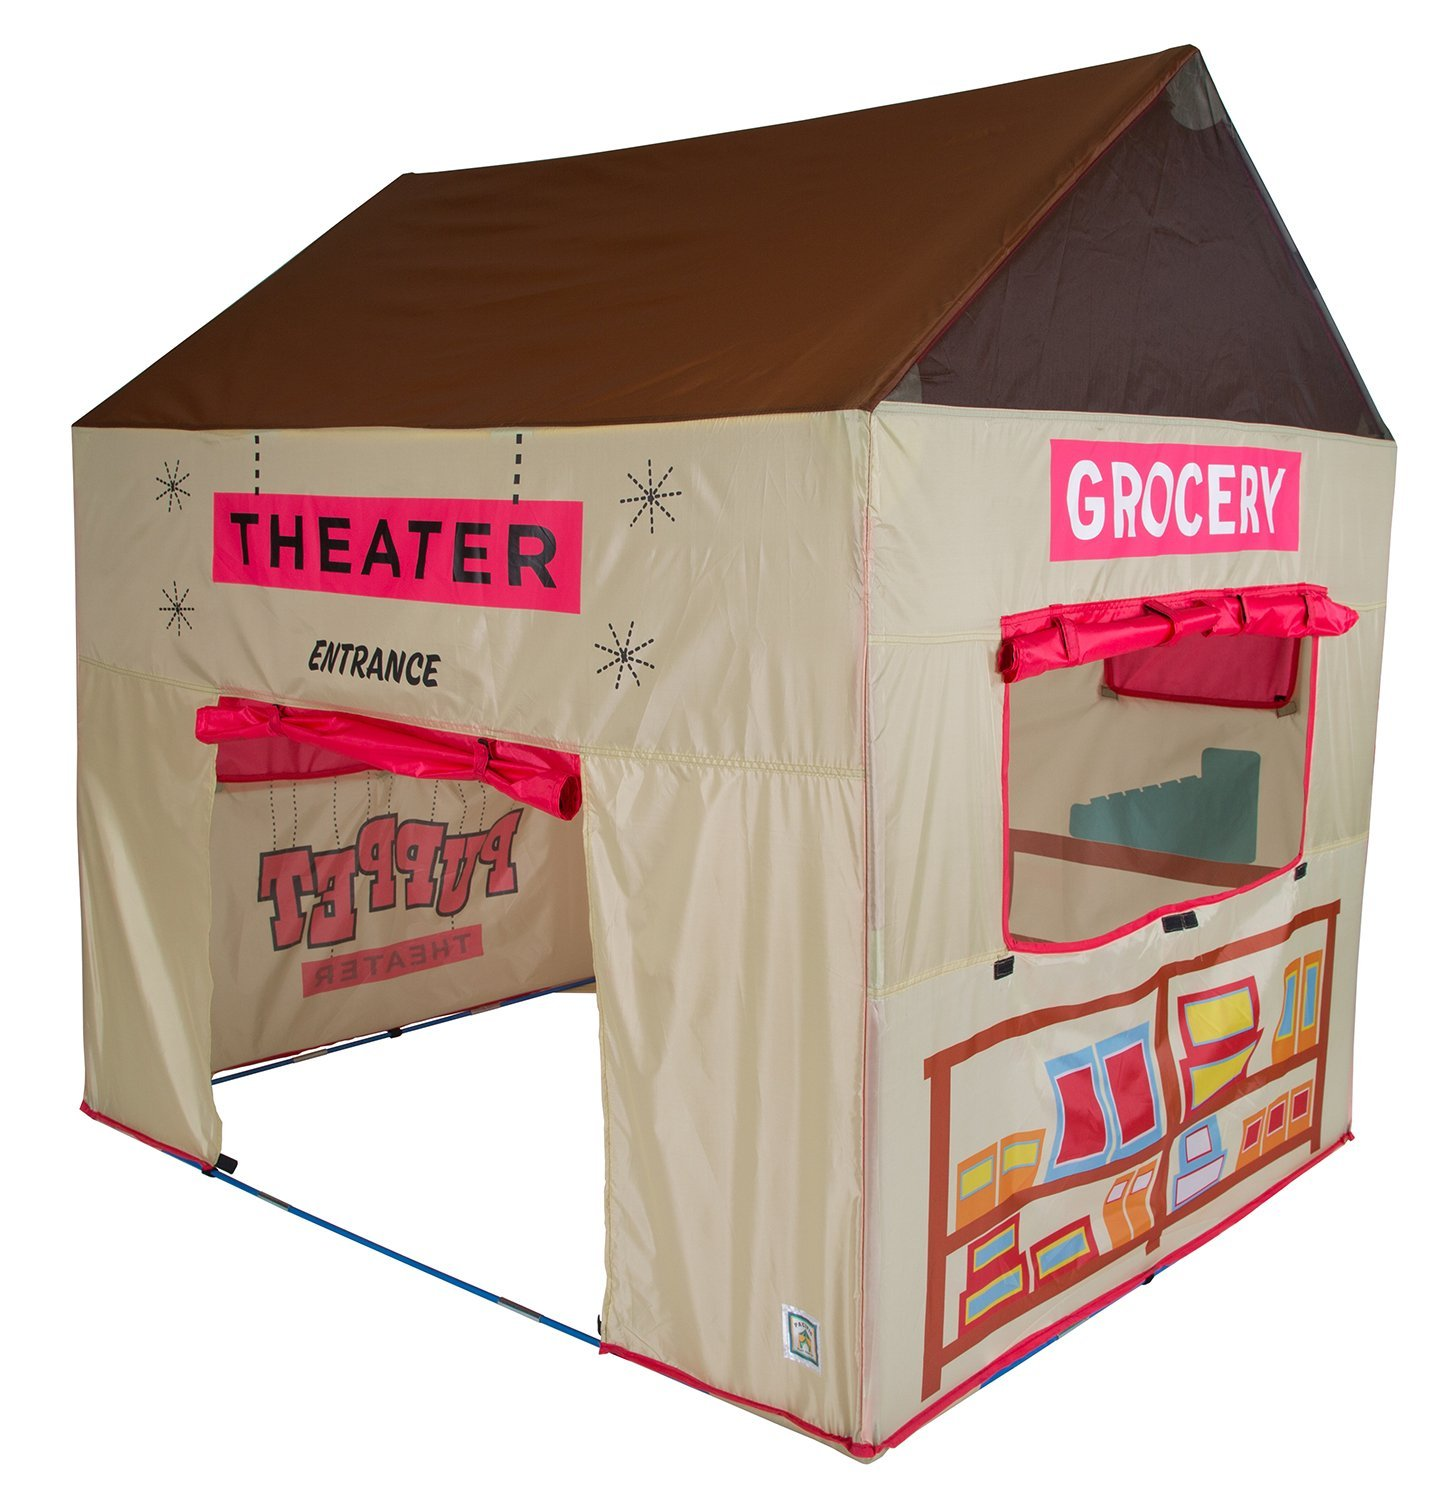 Pacific Play Tents Kids Grocery Store and Puppet Theater House Tent Playhouse Review  sc 1 st  Kids Toys News & Mag-genius award-winning building magnet tiles toy - Kids Toys News